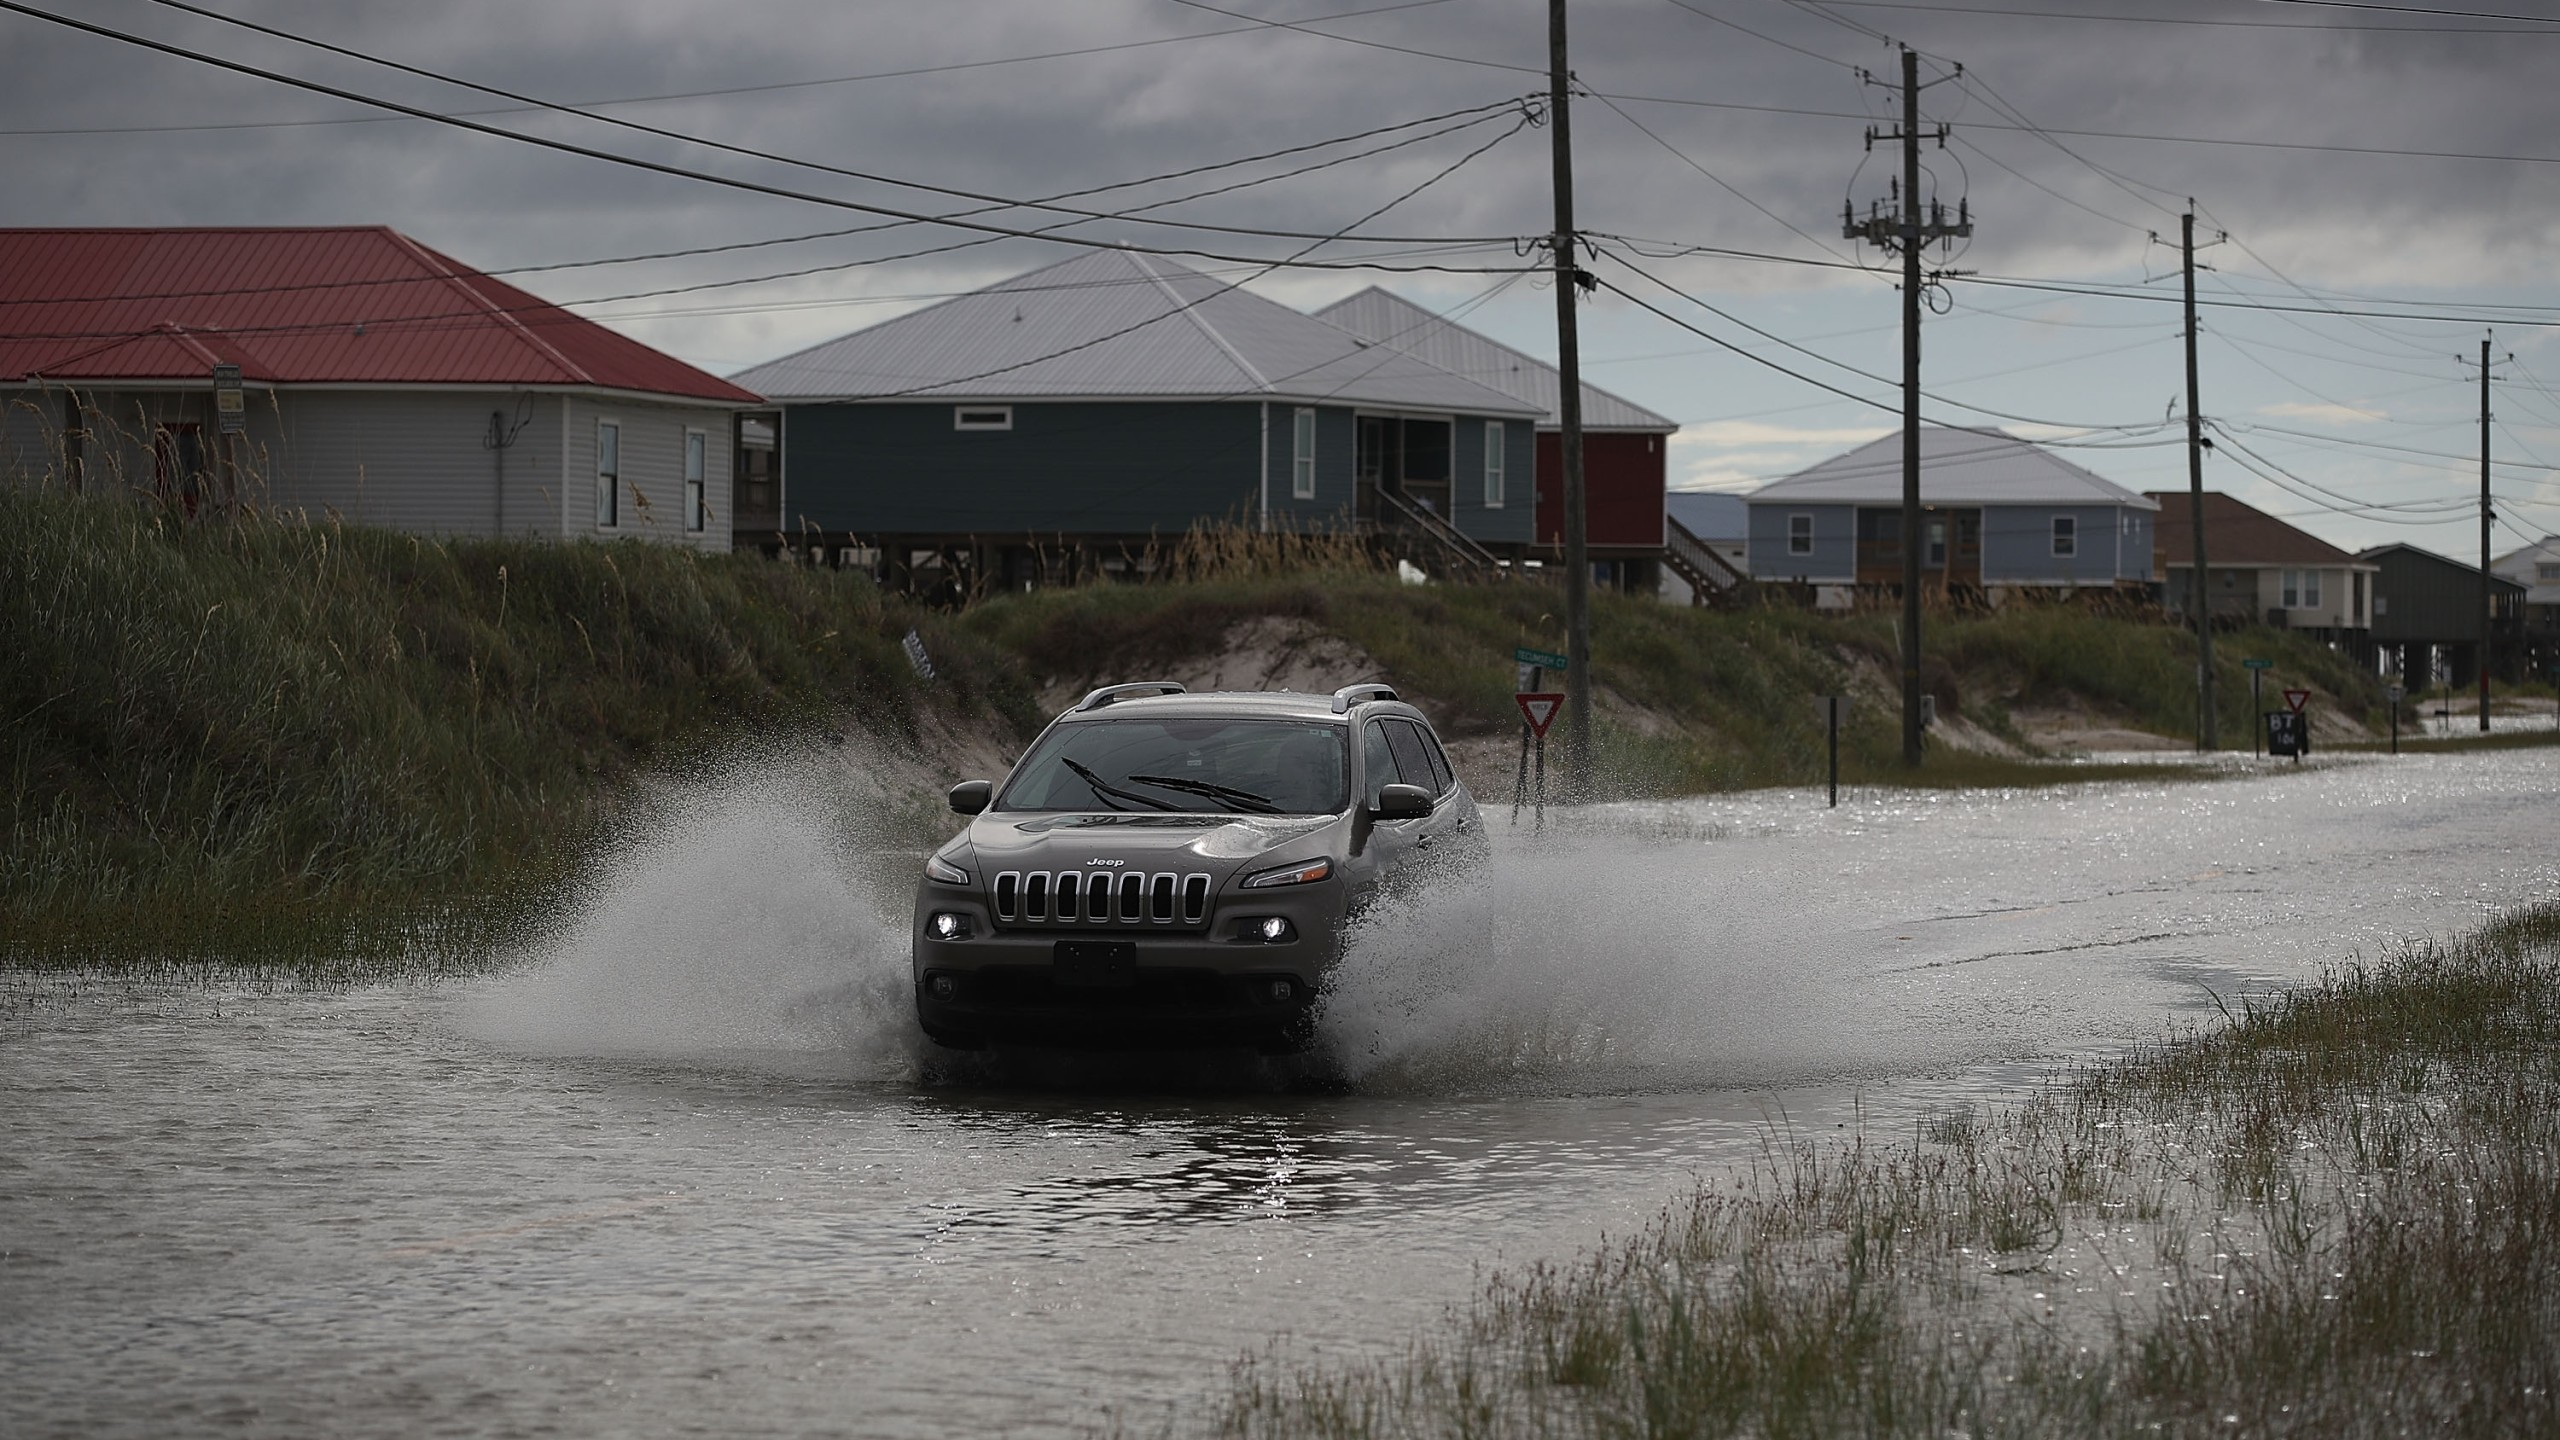 A vehicle drives along a flooded street caused by the approaching Tropical Storm Gordon on September 4, 2018 in Dauphin Island, Alabama. (Credit: Joe Raedle/Getty Images)